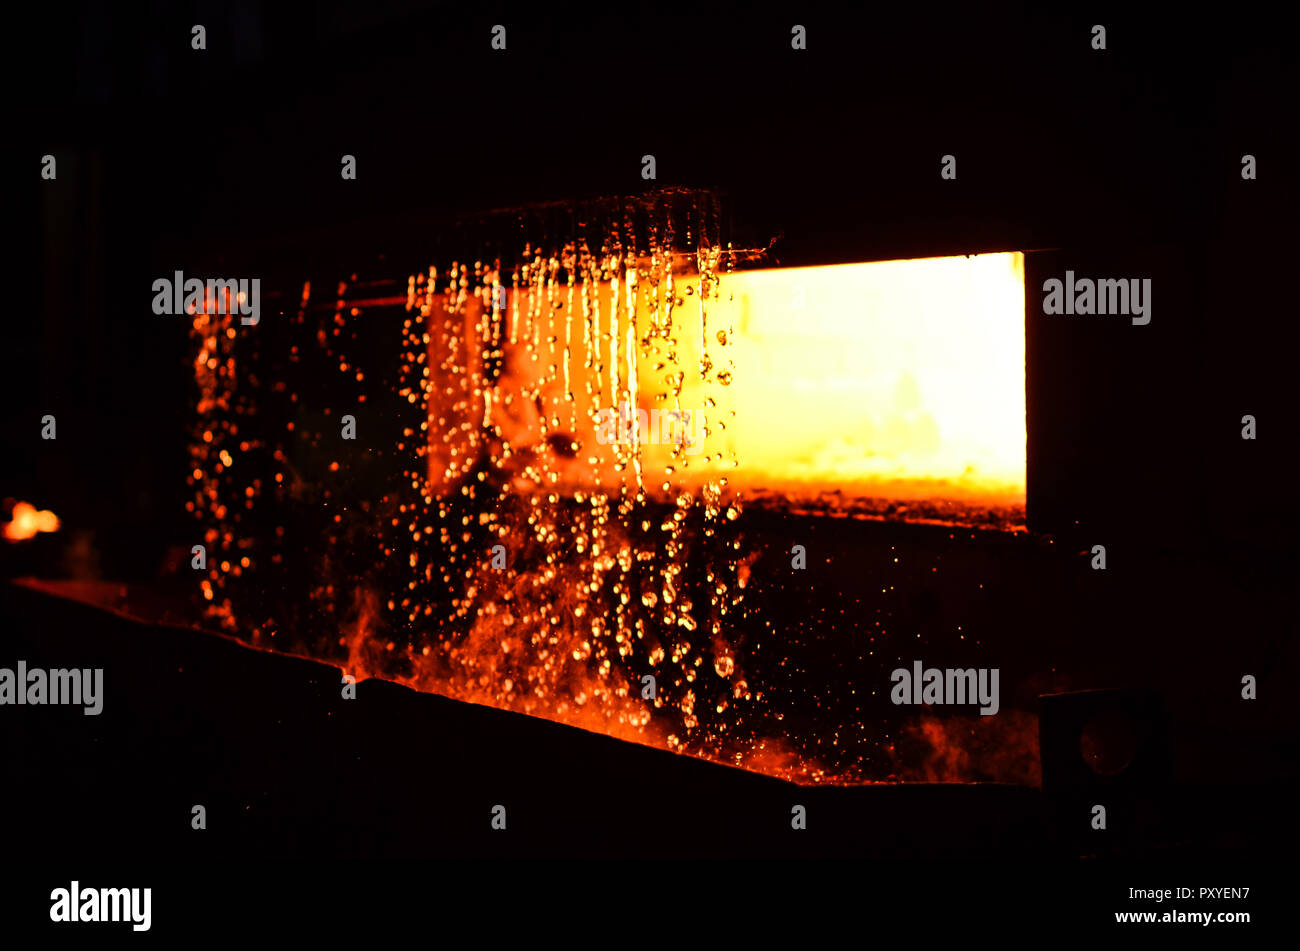 High temperature in the melting furnace. Metallurgical industry. Heavy forging steelmaking plant and steelmaking workshop. Oven. Water curtain. - Stock Image